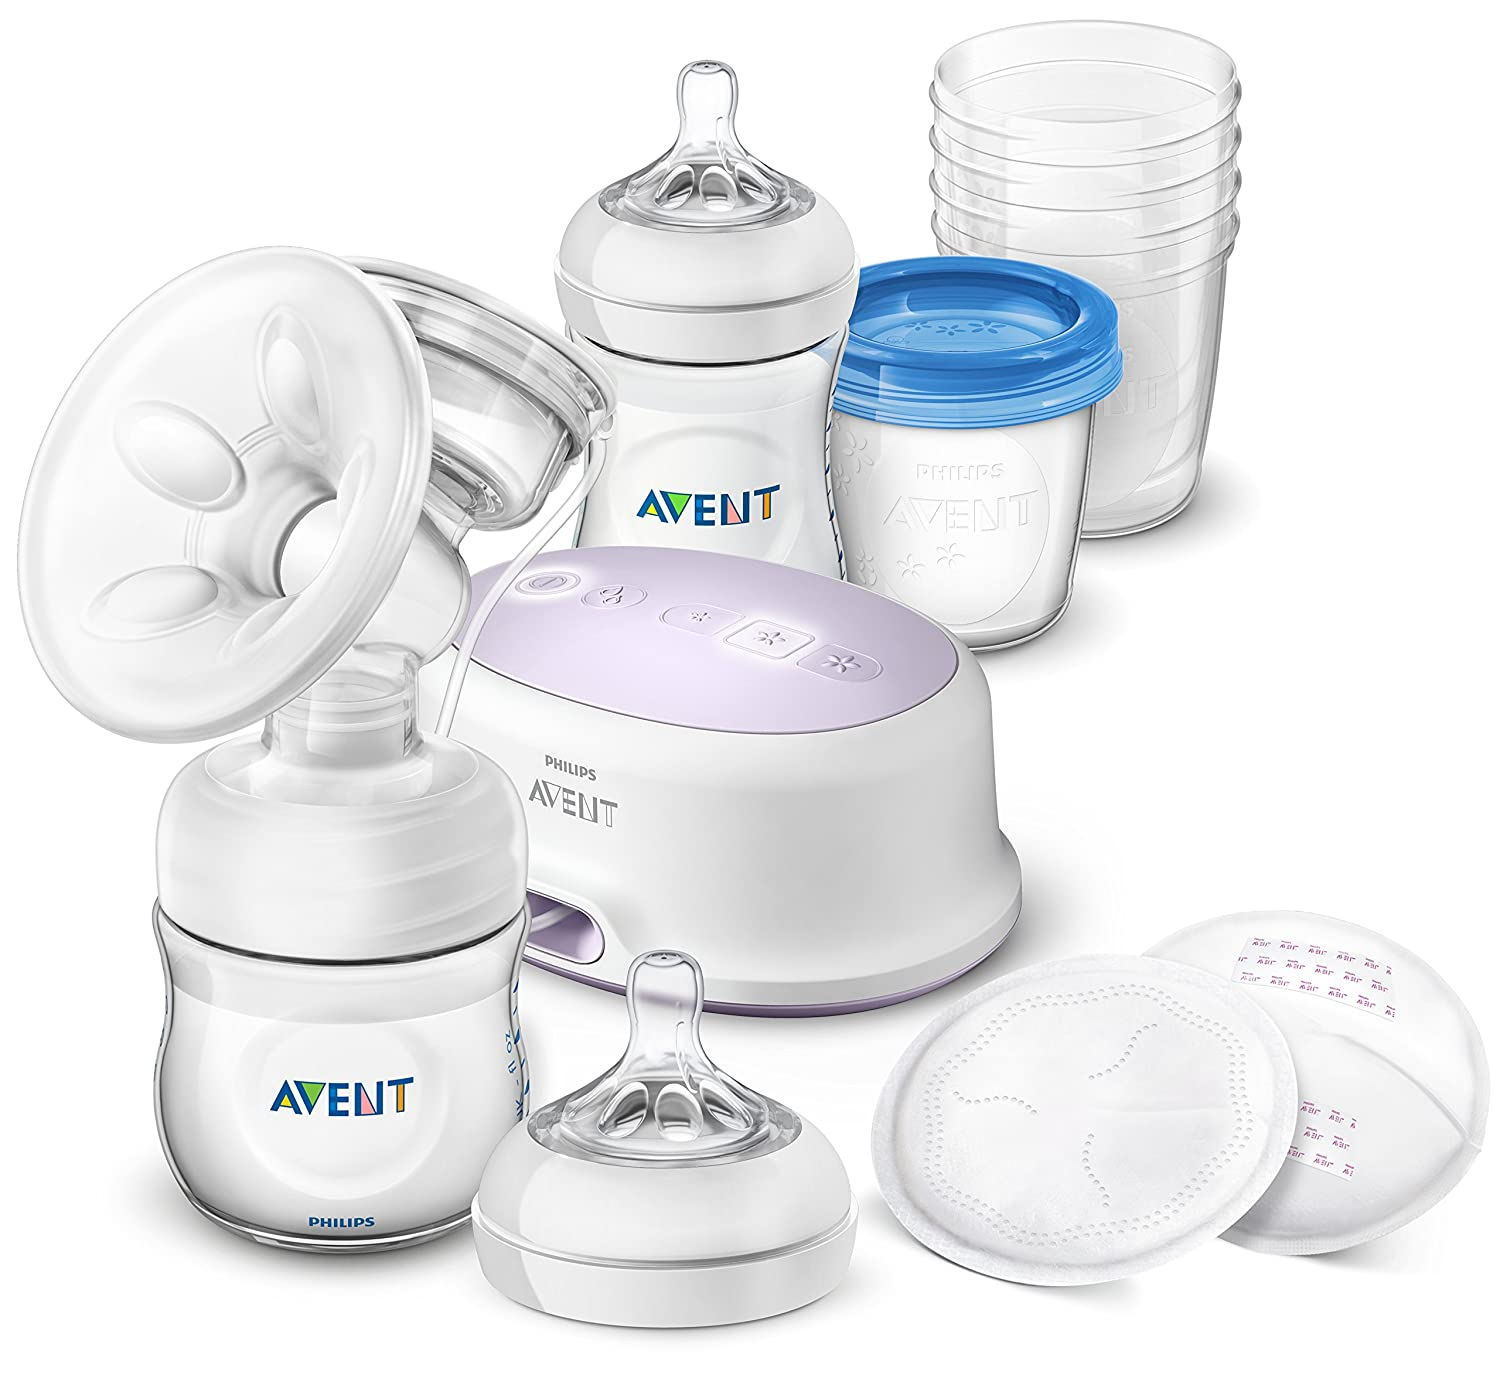 AVENT Breastfeeding starter kit with electric breast pump, SCD223/00 EU-plug , includes natural bottles, storage cups and nursing pads